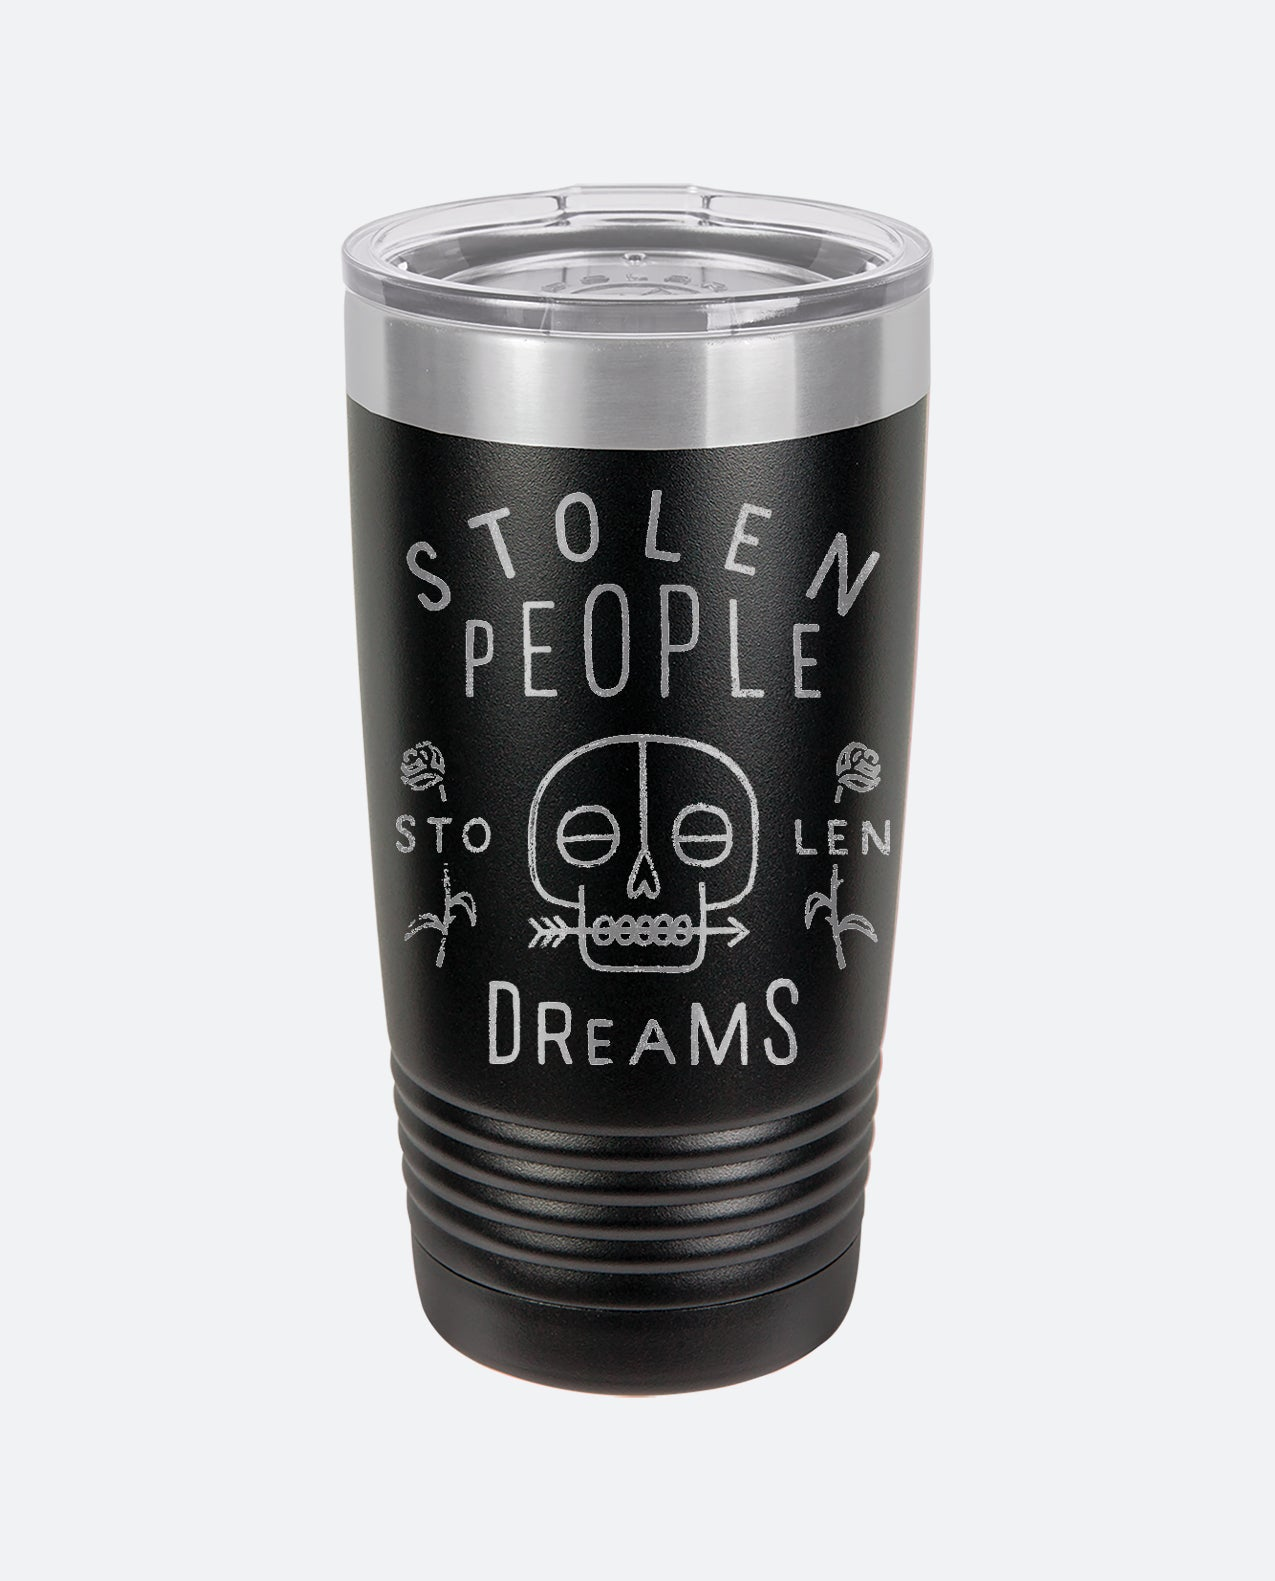 Stolen People Stolen Dreams - Tumbler Drinkware